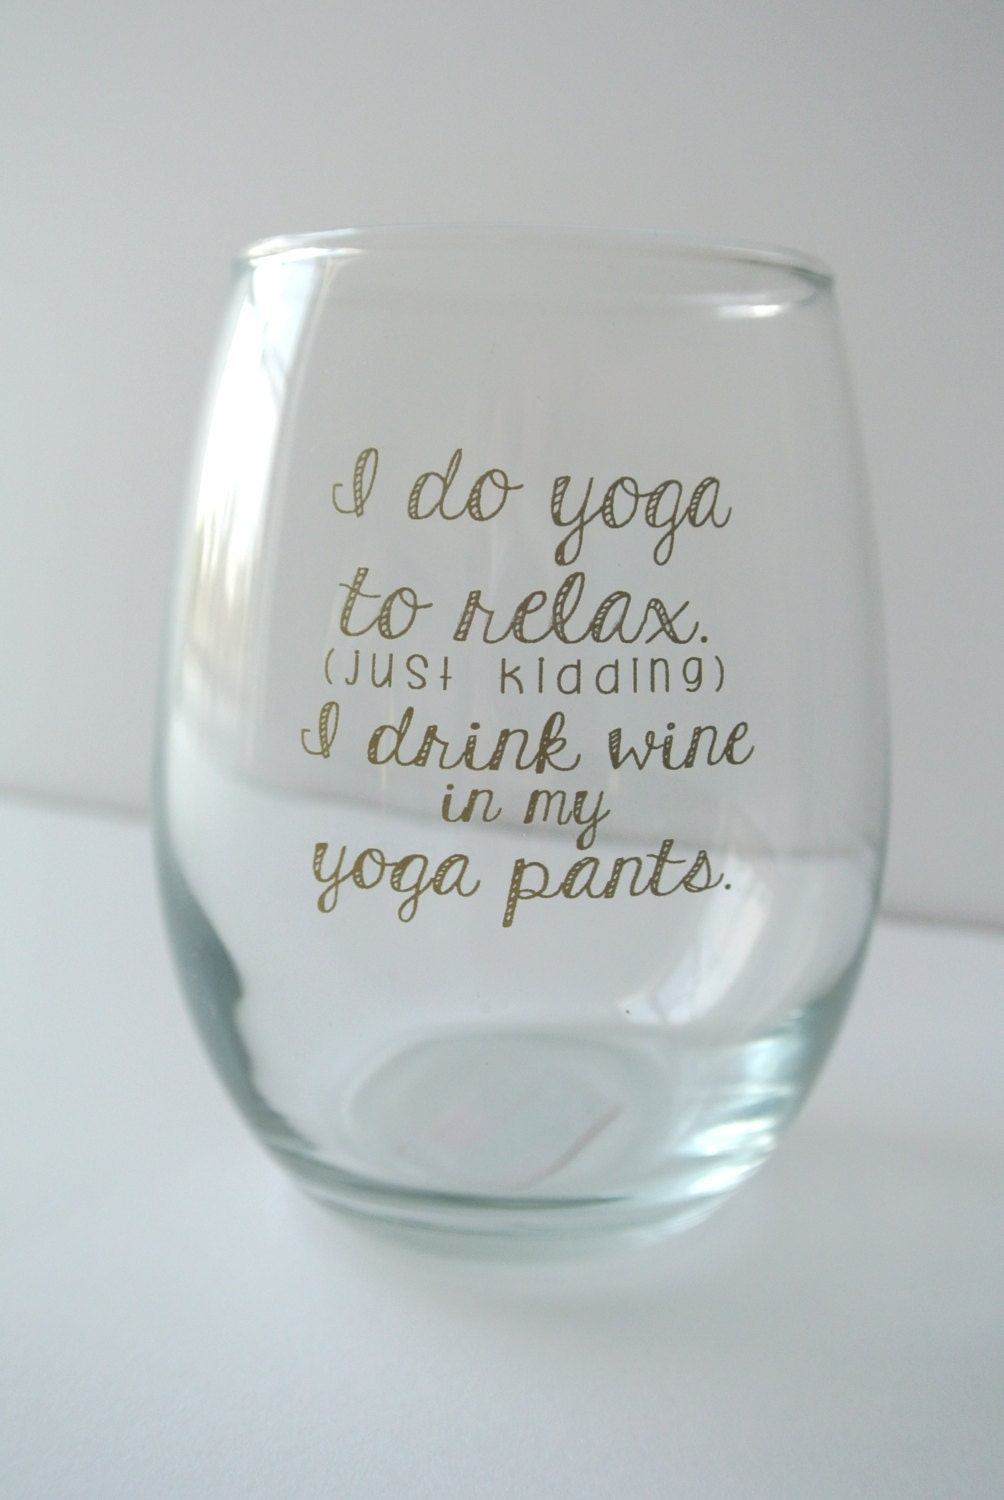 how to put writing on wine glasses